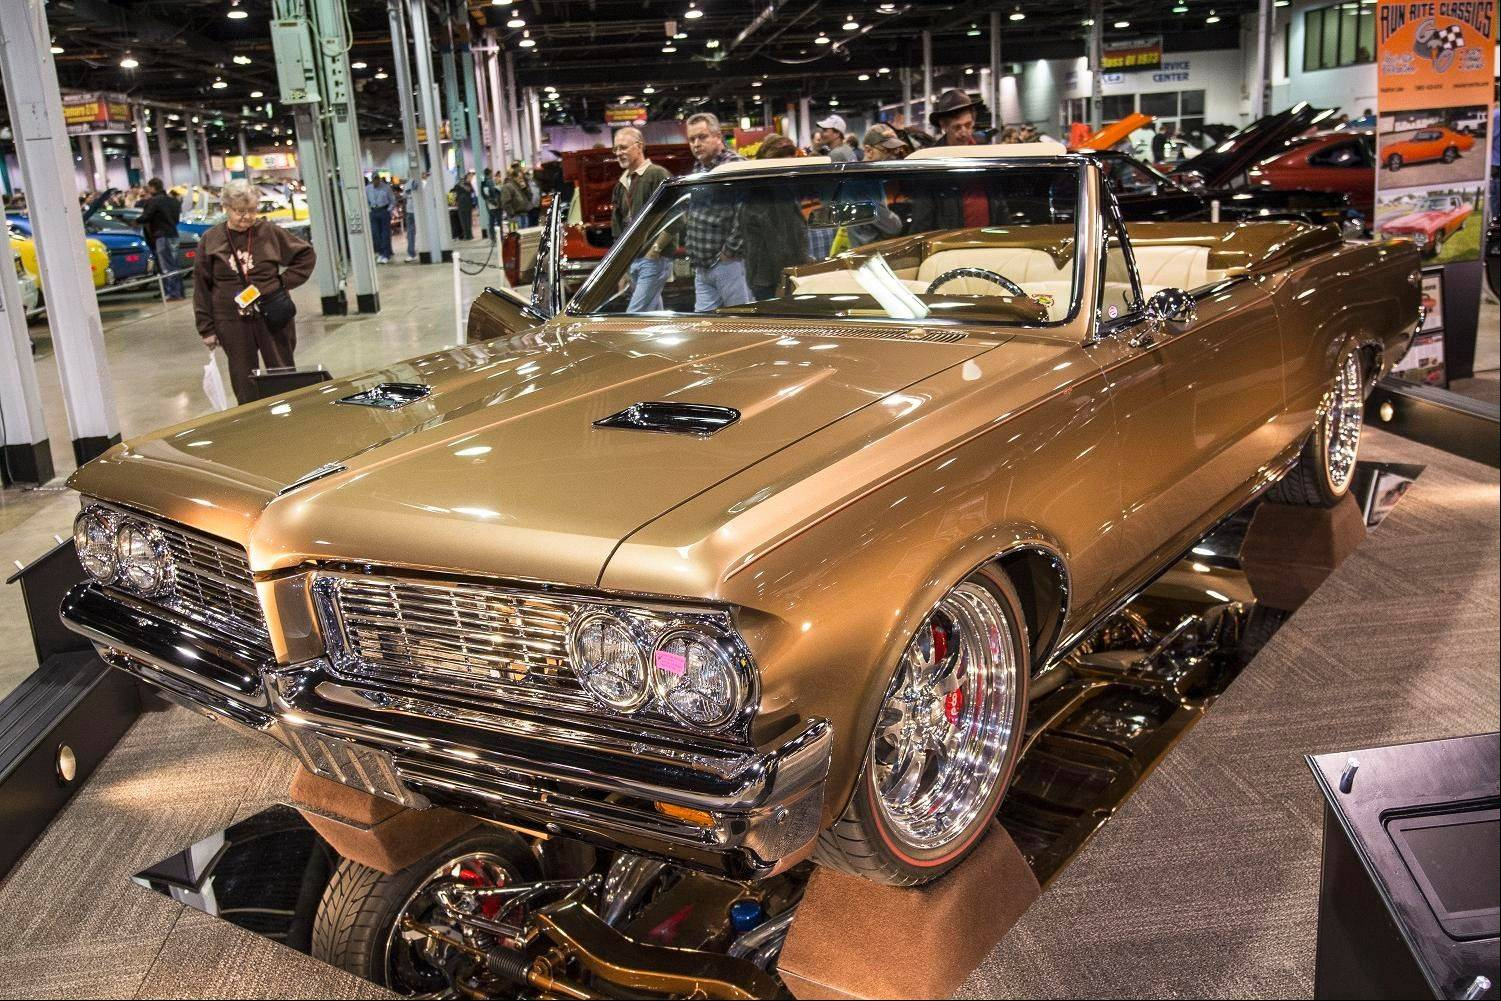 One of the most visually appealing things about John and Peggy Sieffert's 1964 Pontiac GTO is its shiny coat of Mocha and Cr�me Brulee paint.